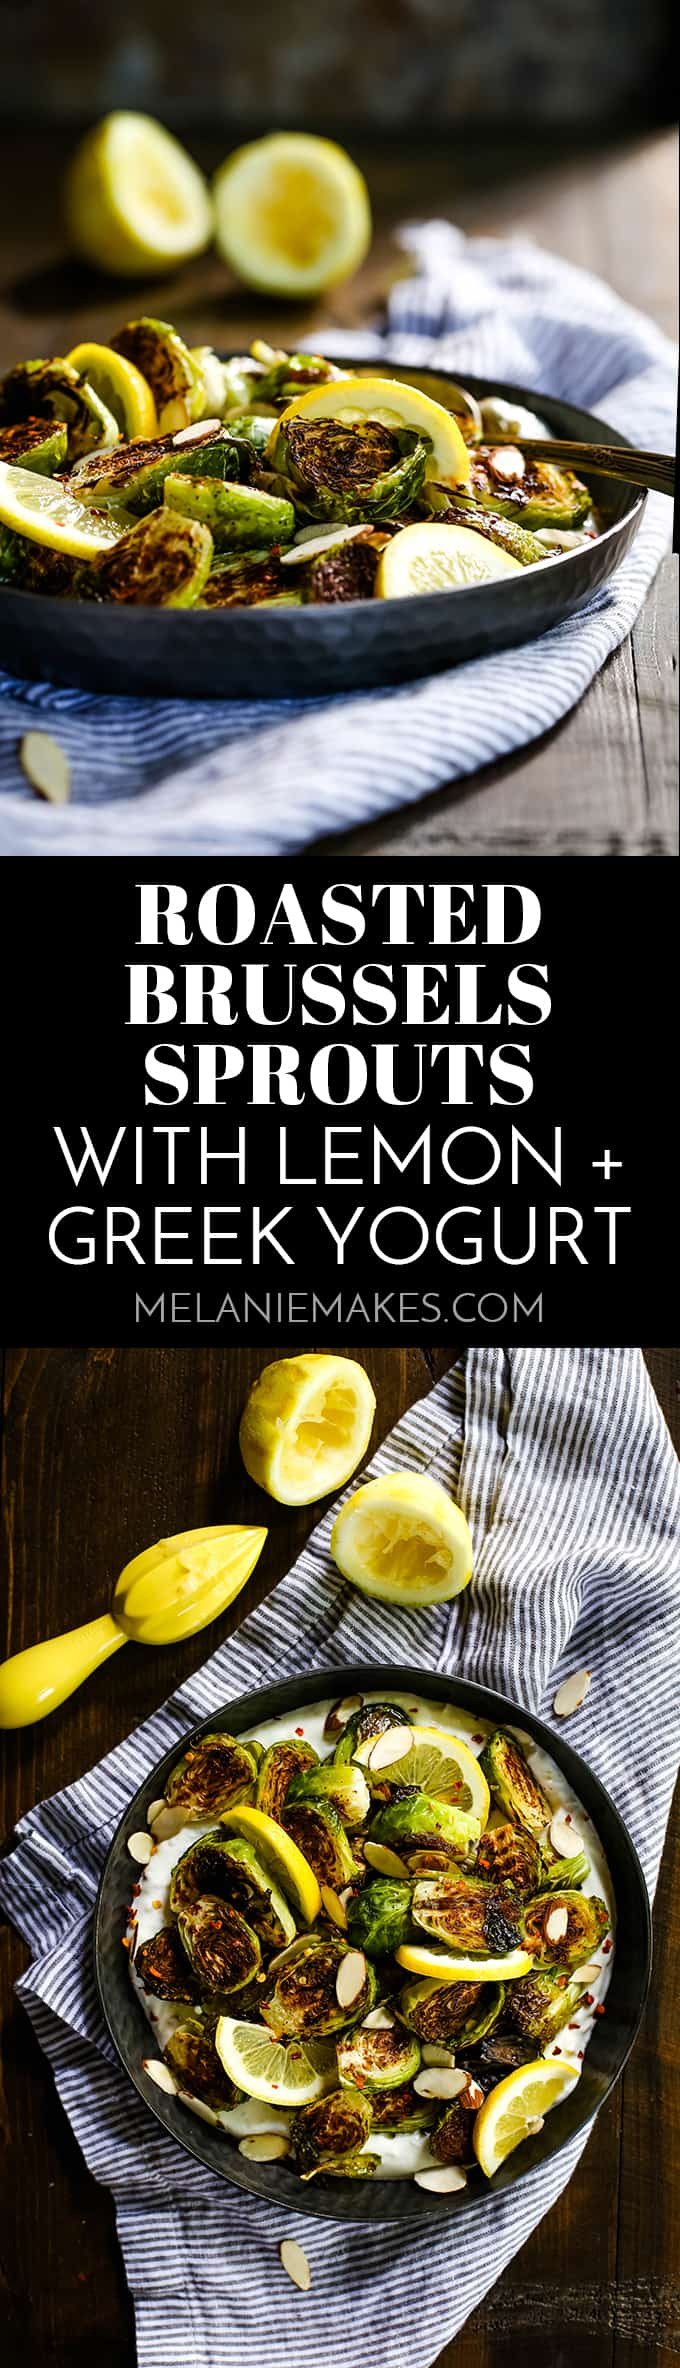 These six ingredient Roasted Brussels Sprouts with Lemon and Greek Yogurt are the perfect Spring side dish and couldn't be easier! #roasted #brusselssprouts #lemon #yogurt #greekyogurt #sidedish #spring